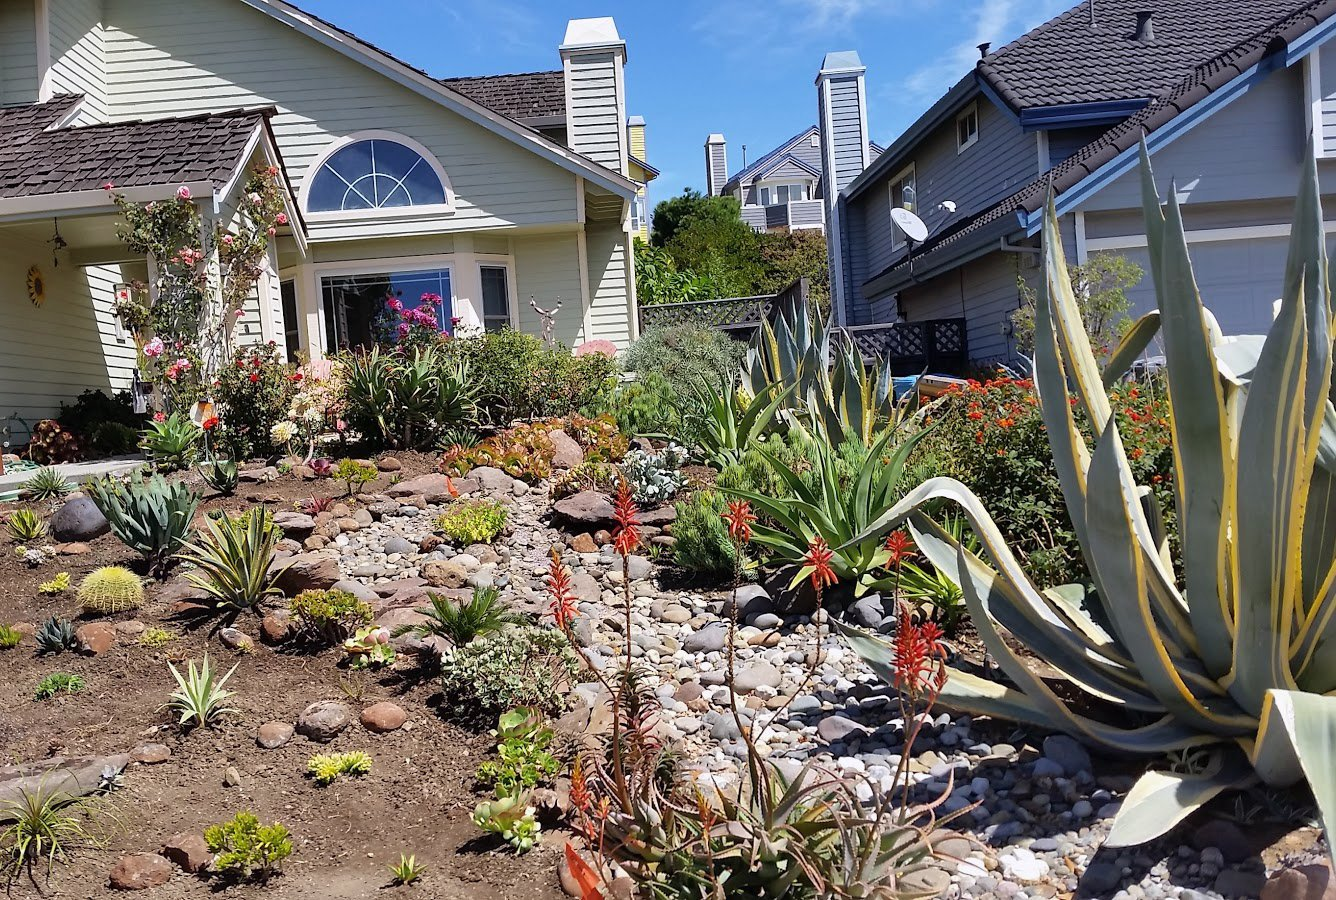 Lawn Replaced With New Succulent Garden. Our Installation And Design  Incorporated A New Sweeping Dry Creek Bed And Tied In With The Existing  Agave ...